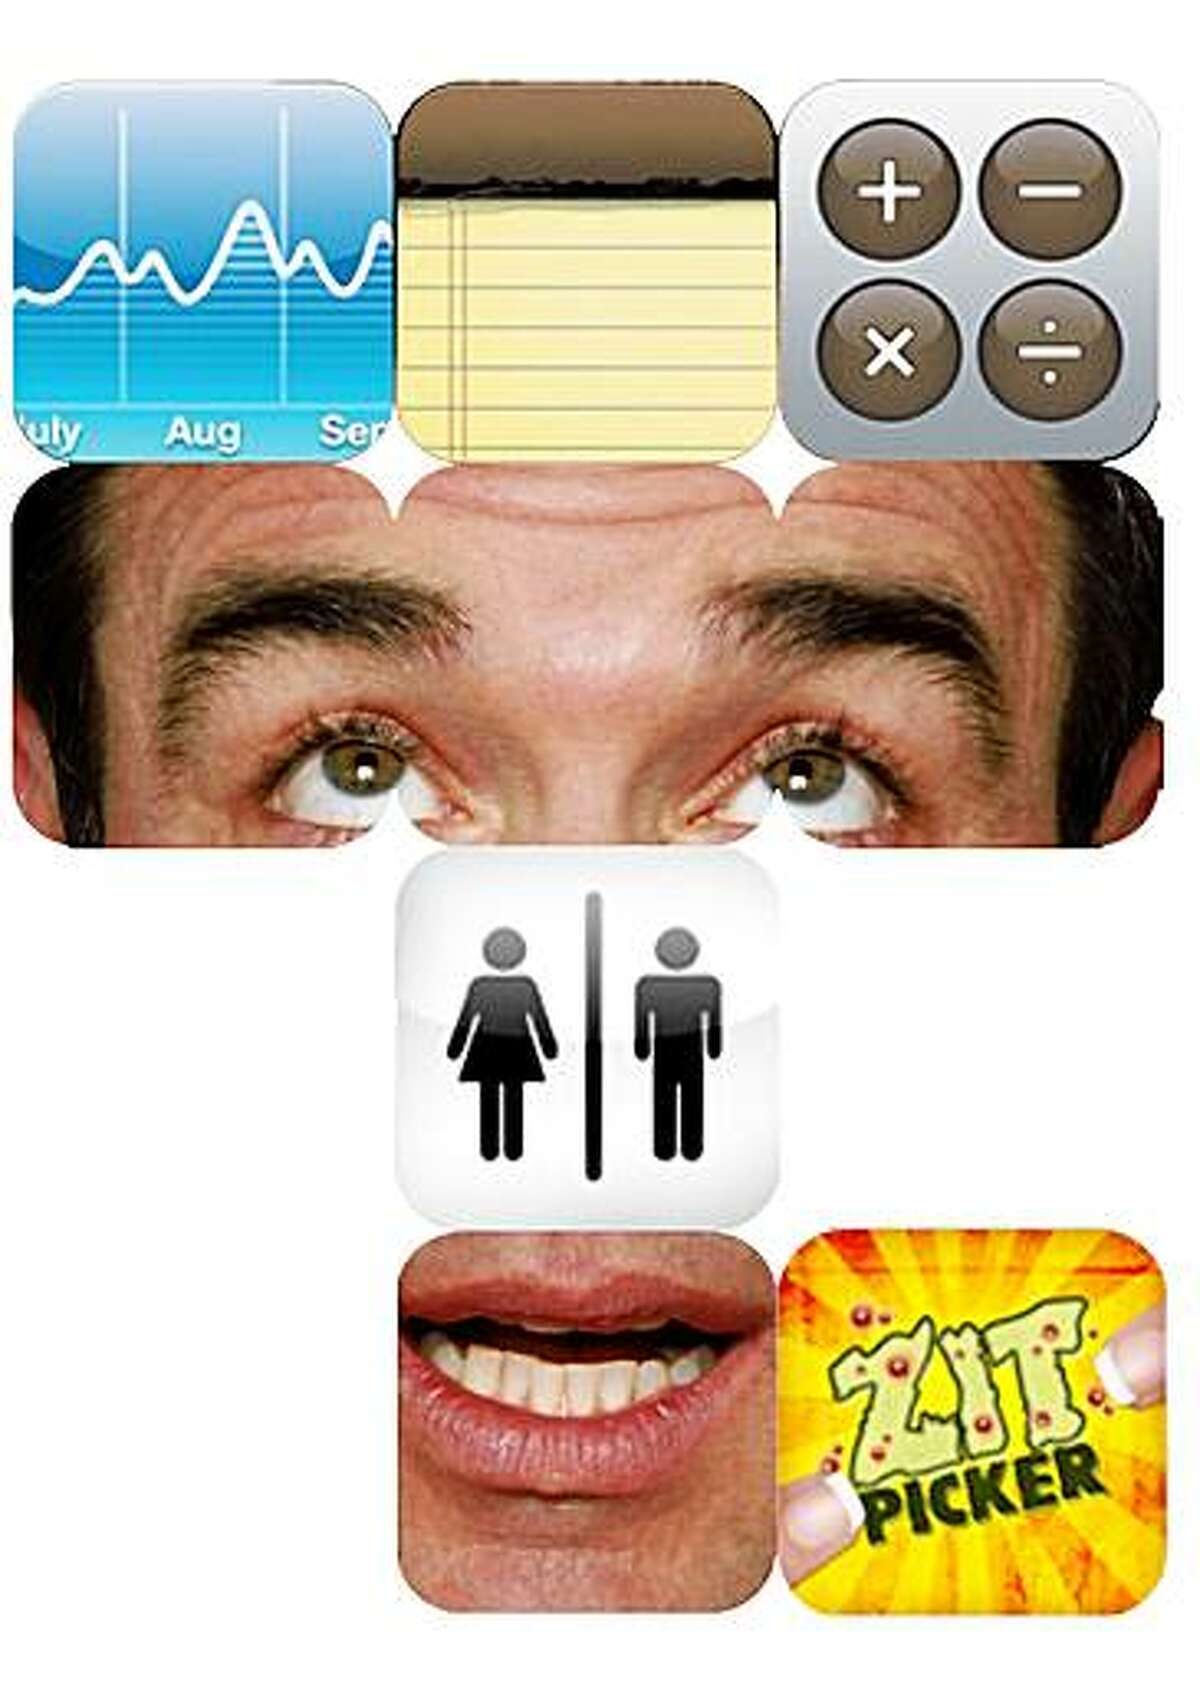 illustration for apple iphone app store selling inane apps by tracy cox